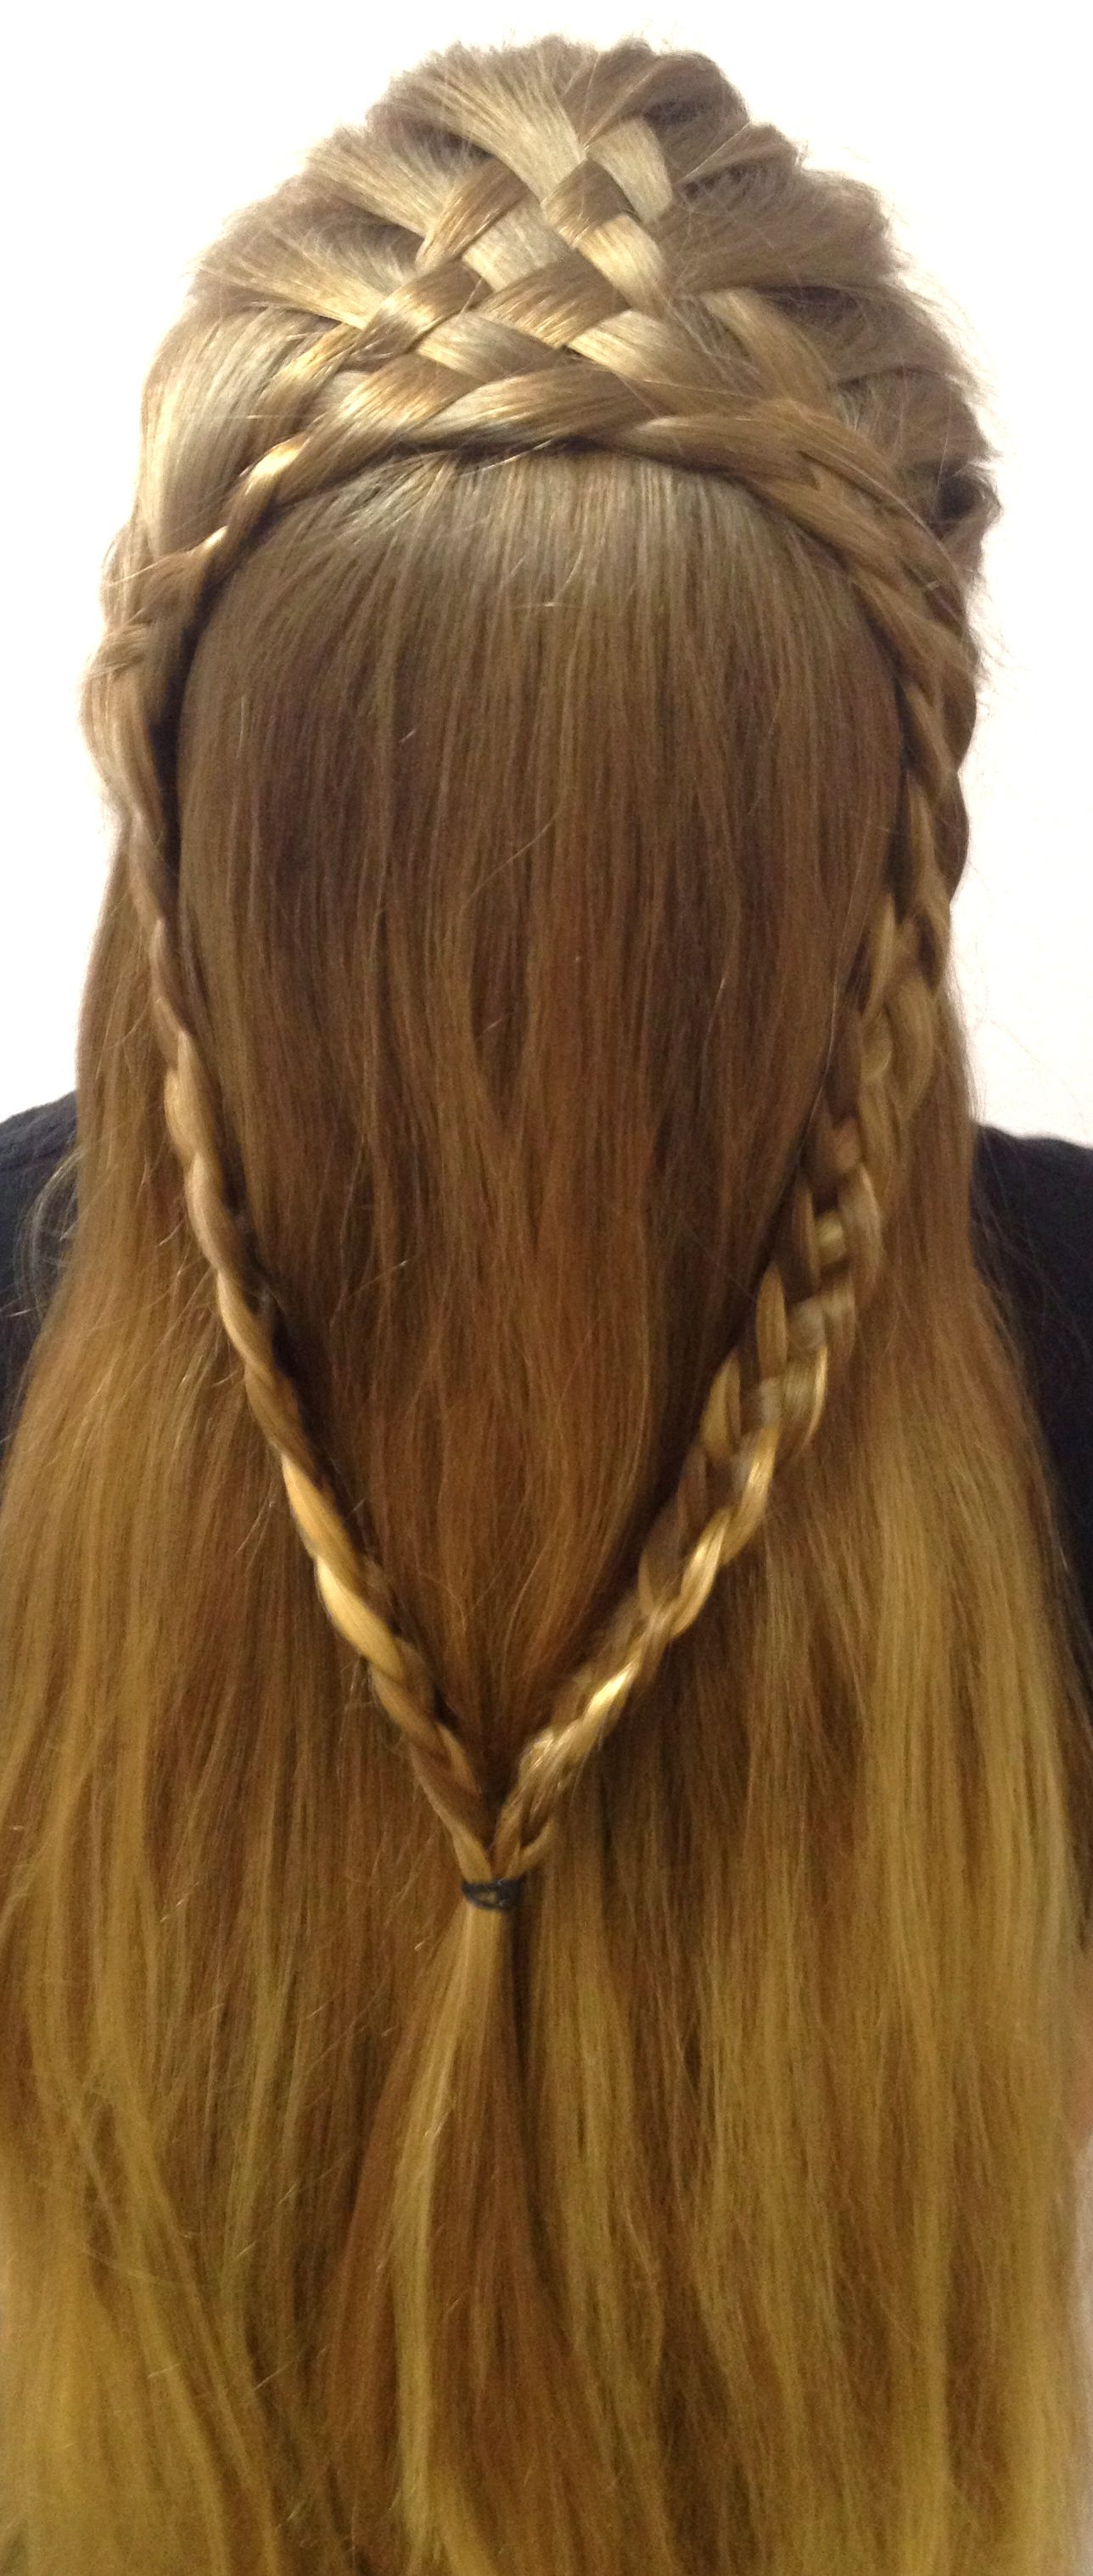 braided hairstyle: 8-strand french-braid split into two 4-strand